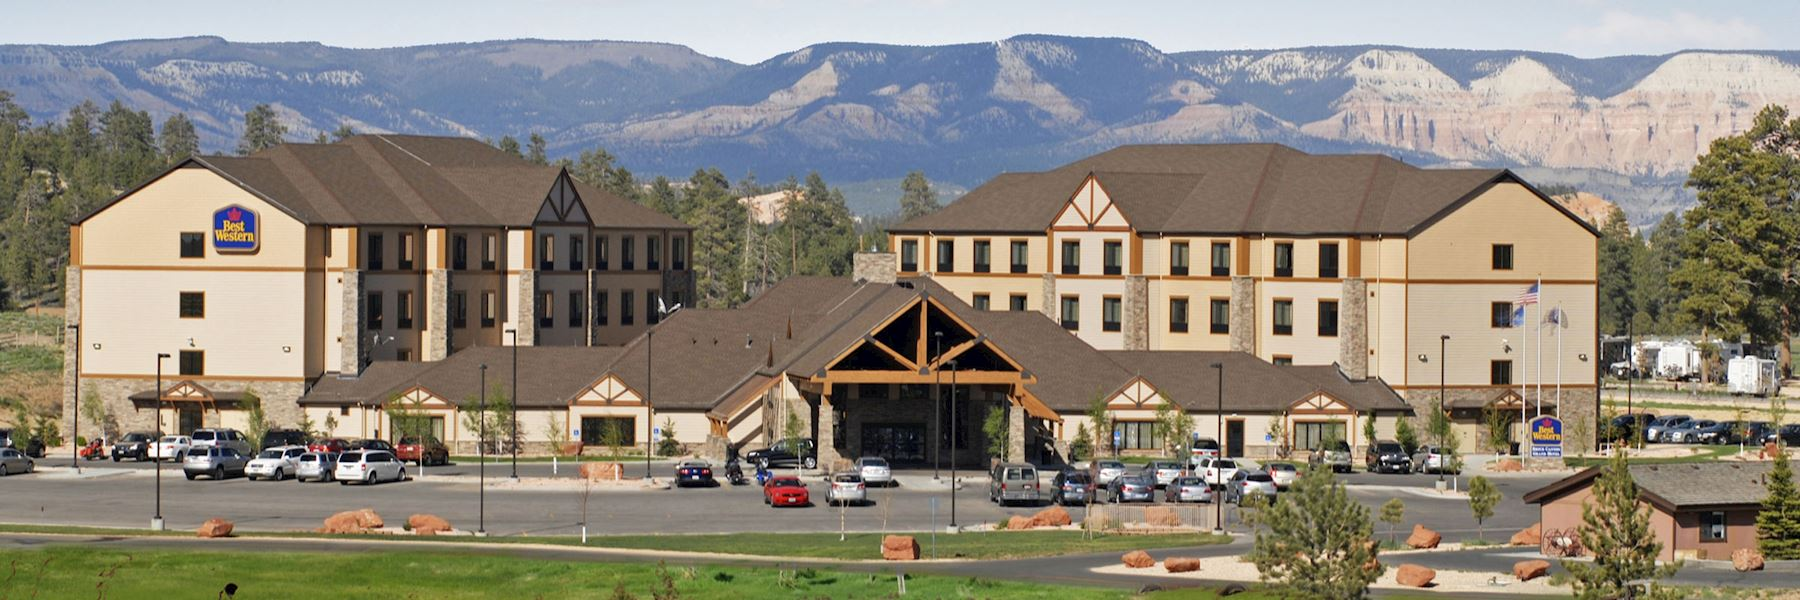 Best Western Bryce Canyon Grand Hotel